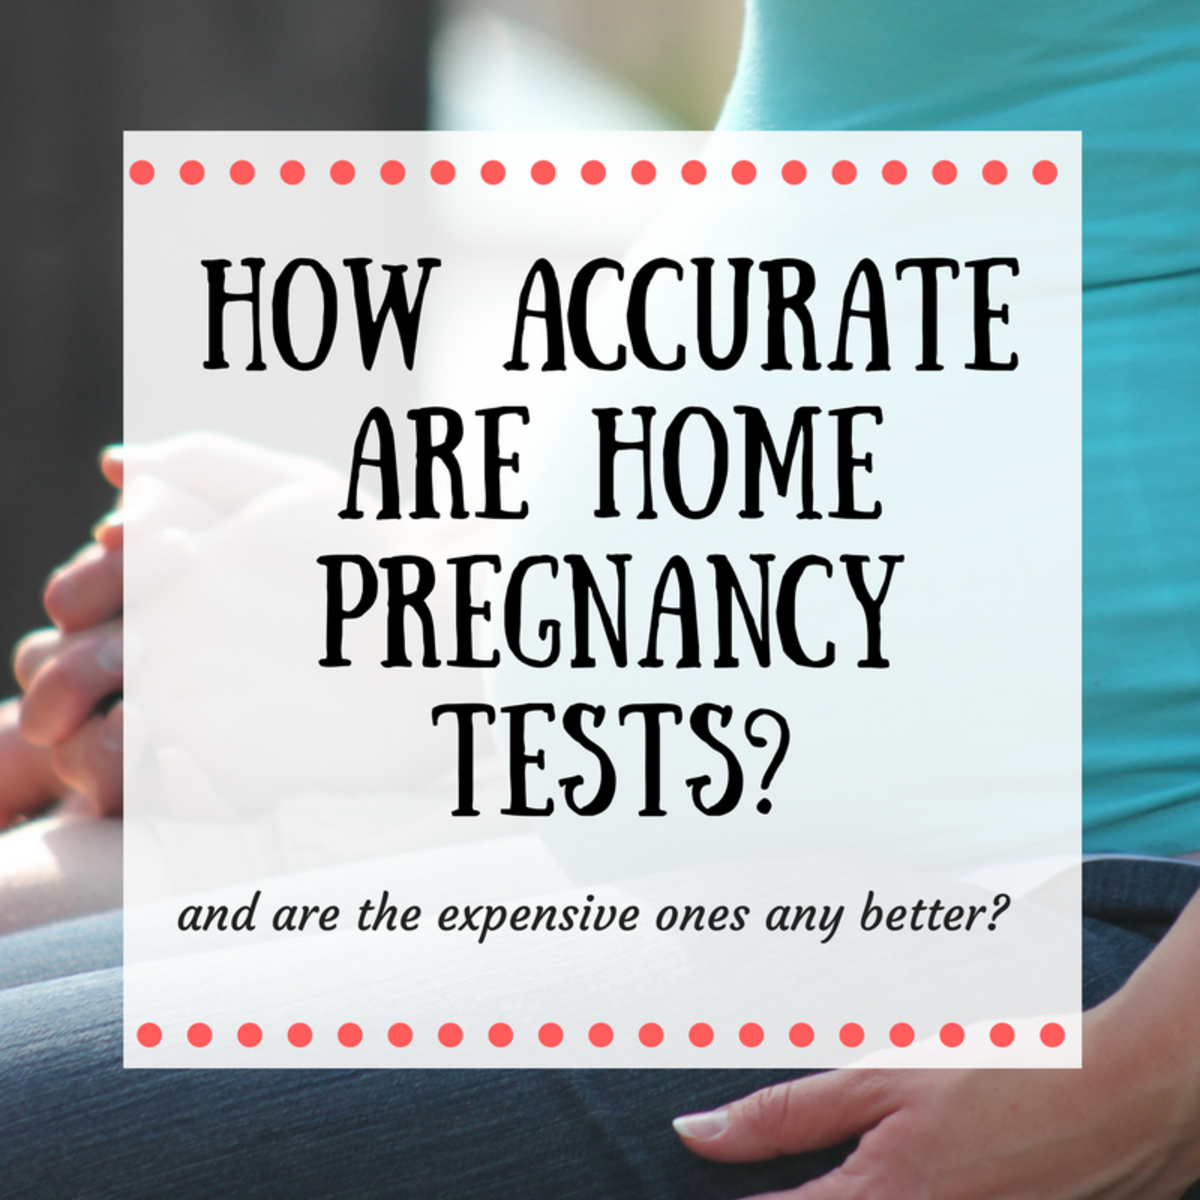 Are Home Pregnancy Tests Accurate?